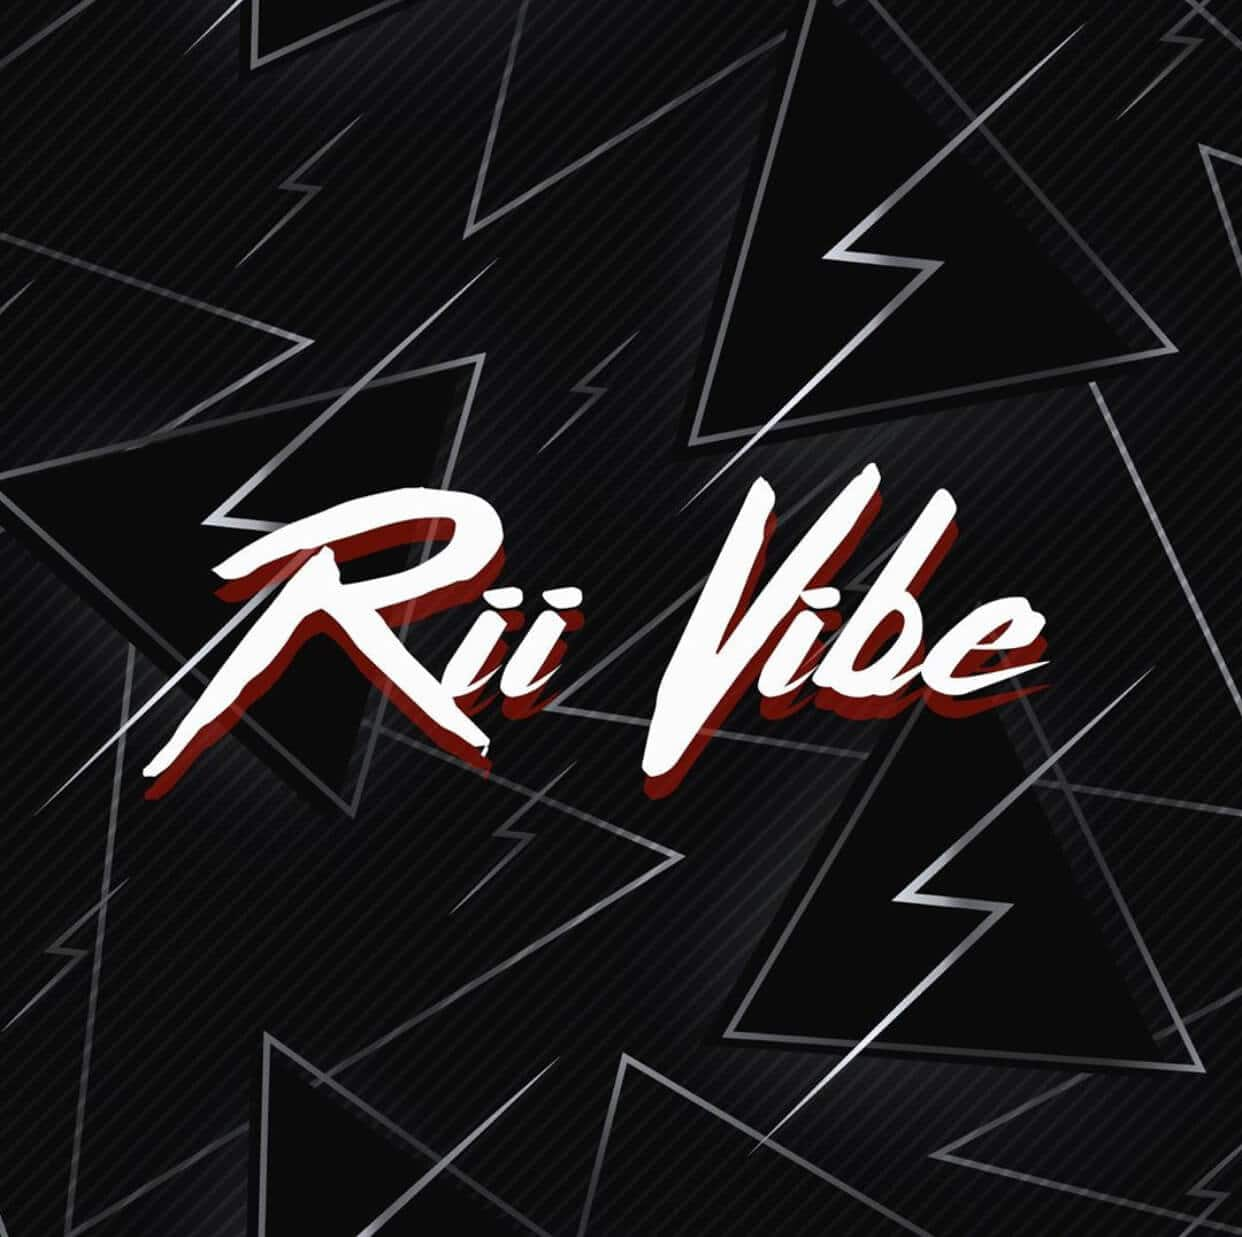 Pheelz - Rii Vibe Mp3 Audio Download